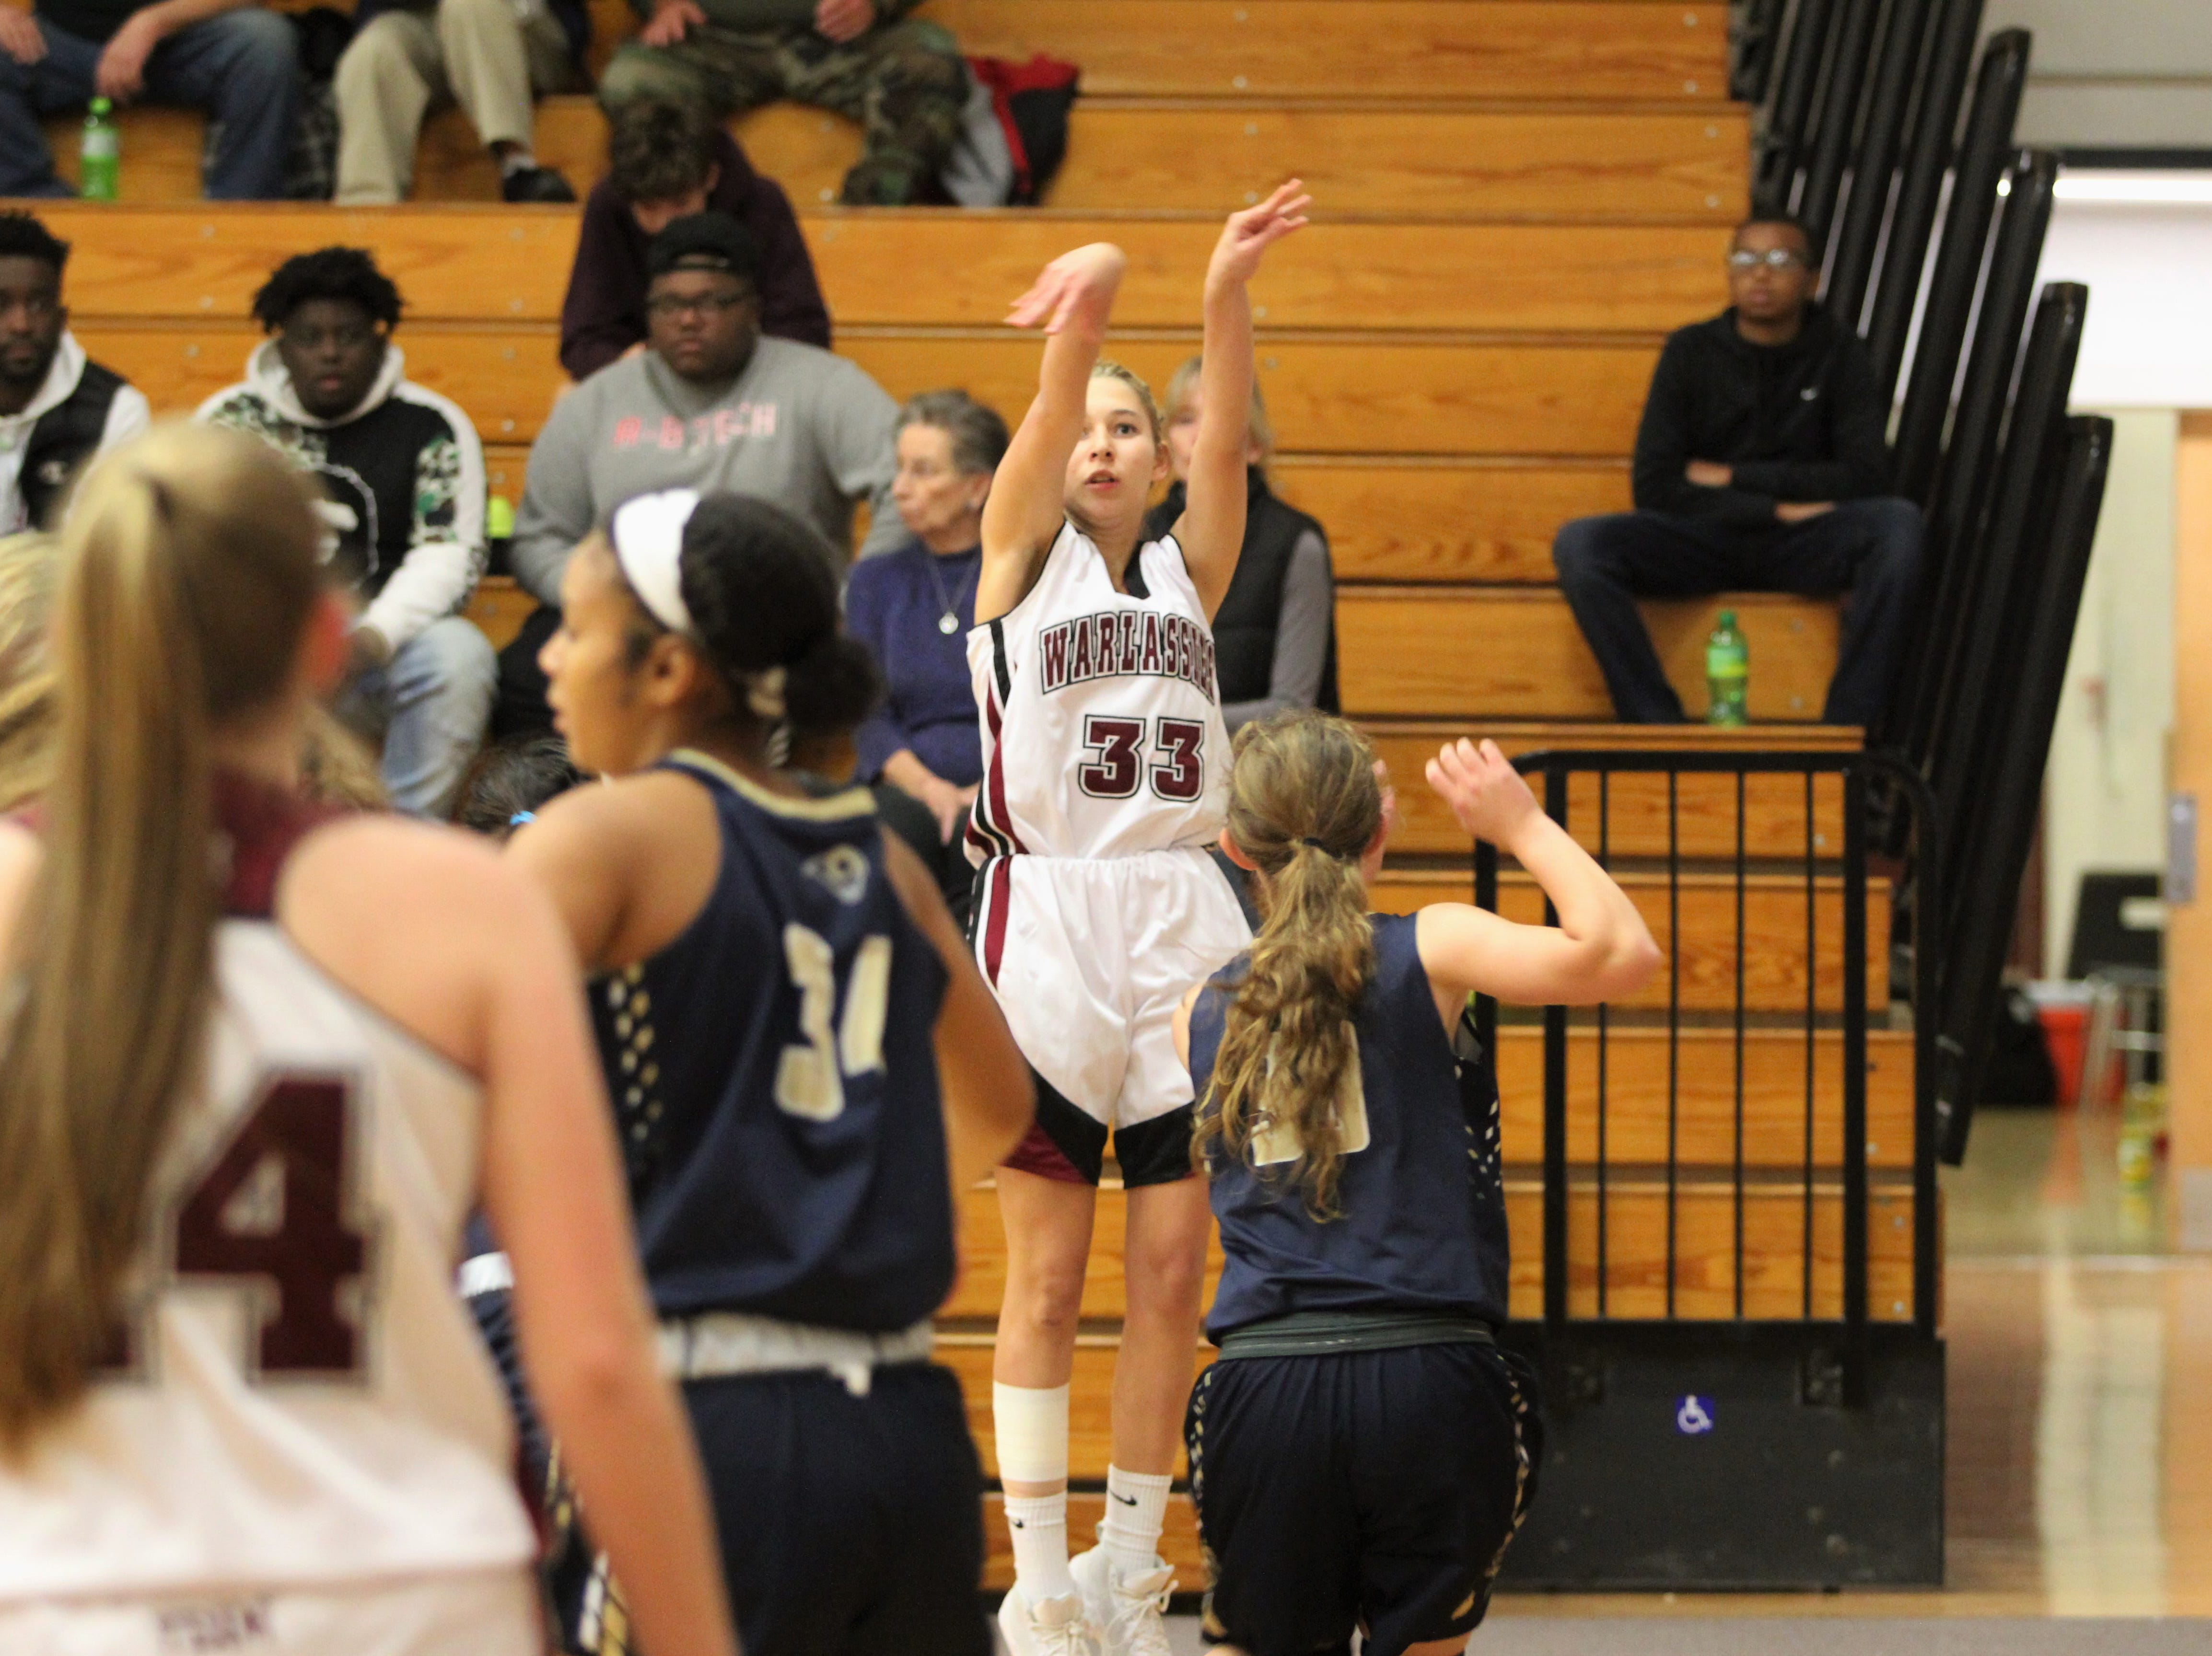 The Owen Warlassies opened the 2018-19 season at home with a 55-45 loss to T.C. Roberson on Nov. 27. Senior Chesney Gardner led the way for Owen with 25 points and 13 rebounds.